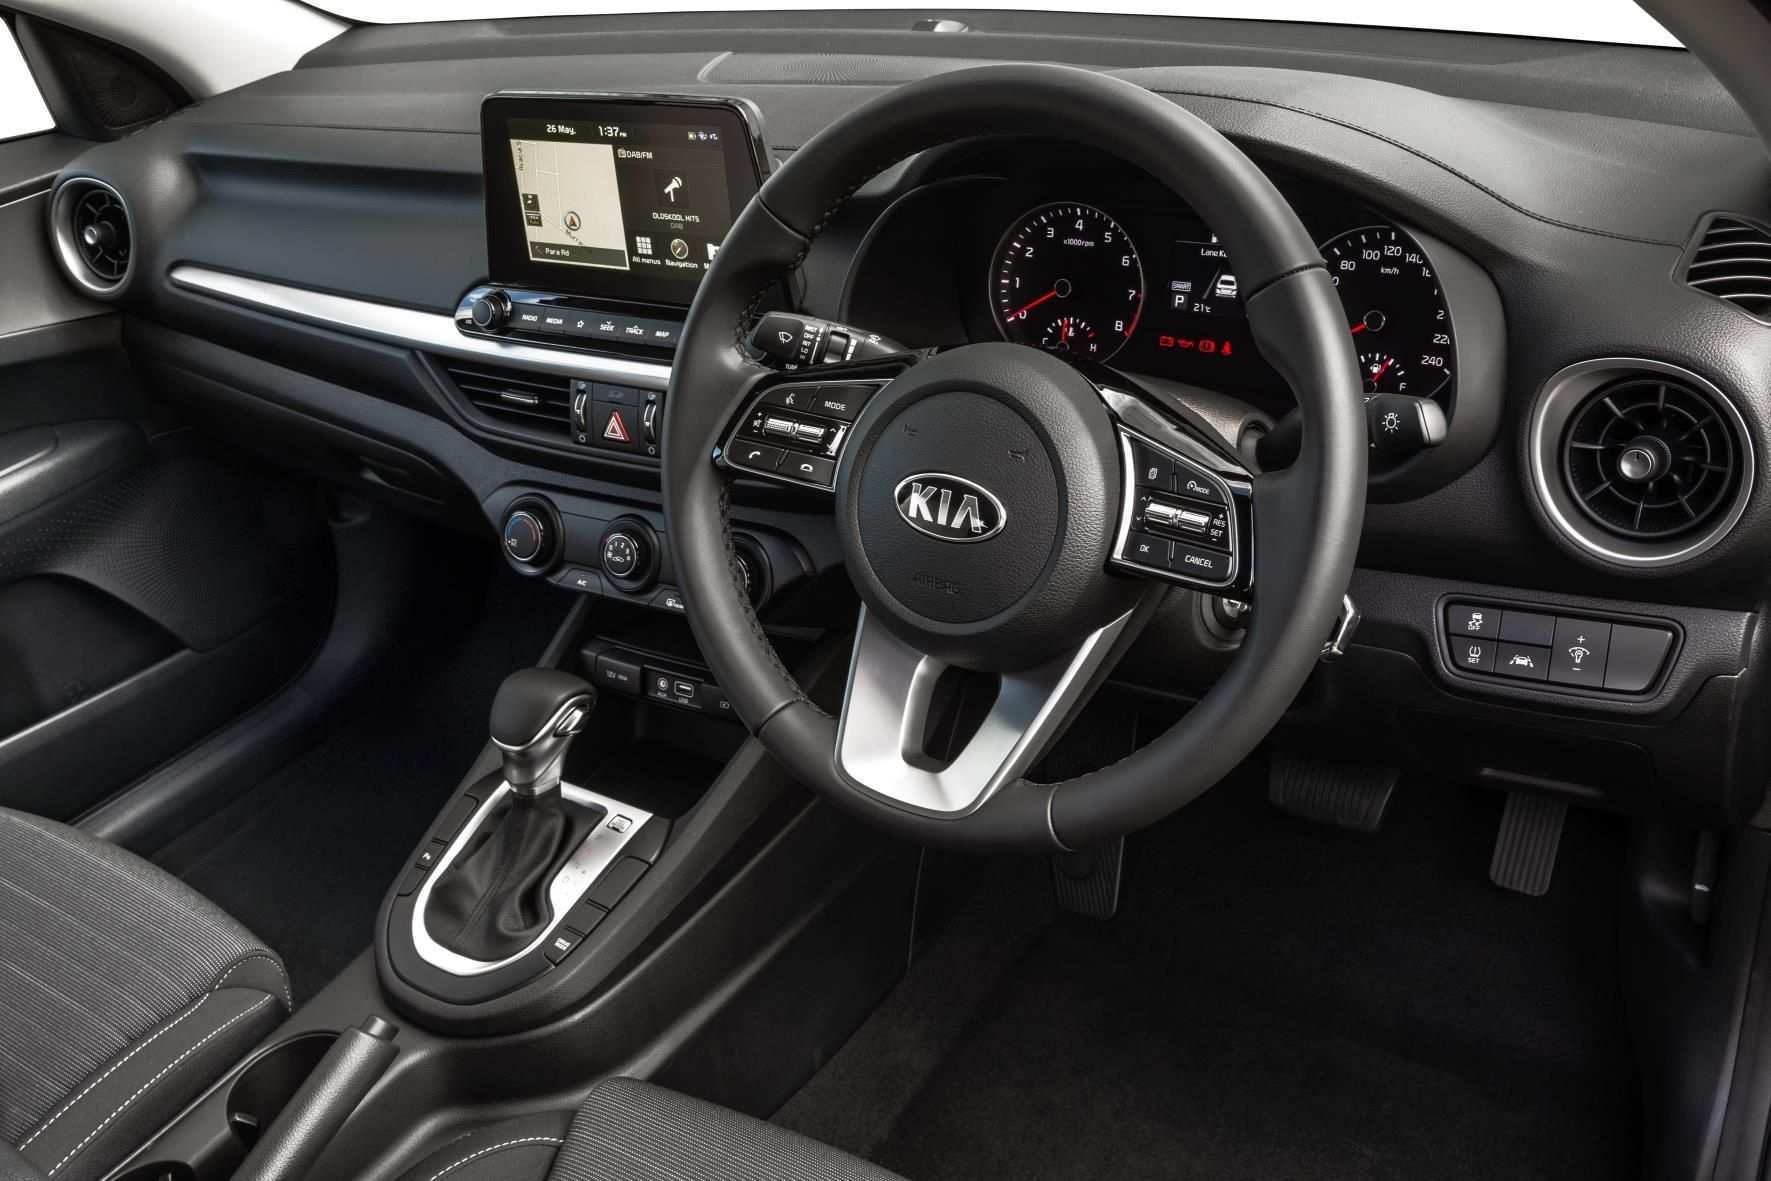 95 All New Kia Cerato 2019 Interior Spesification